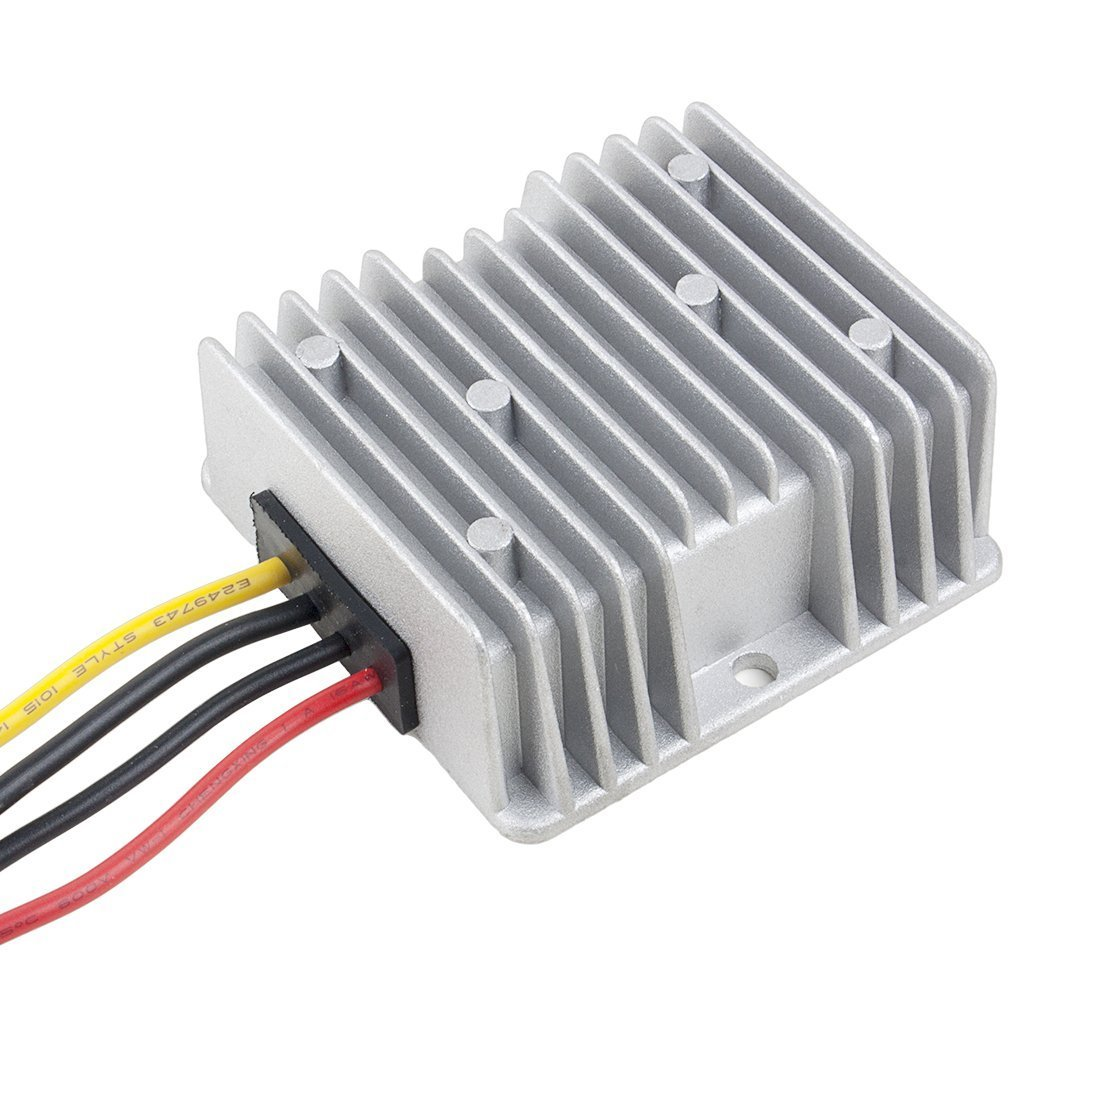 Amazon.com: OldSolider Waterproof DC 24v to 12v Step Down 20A 240W ...